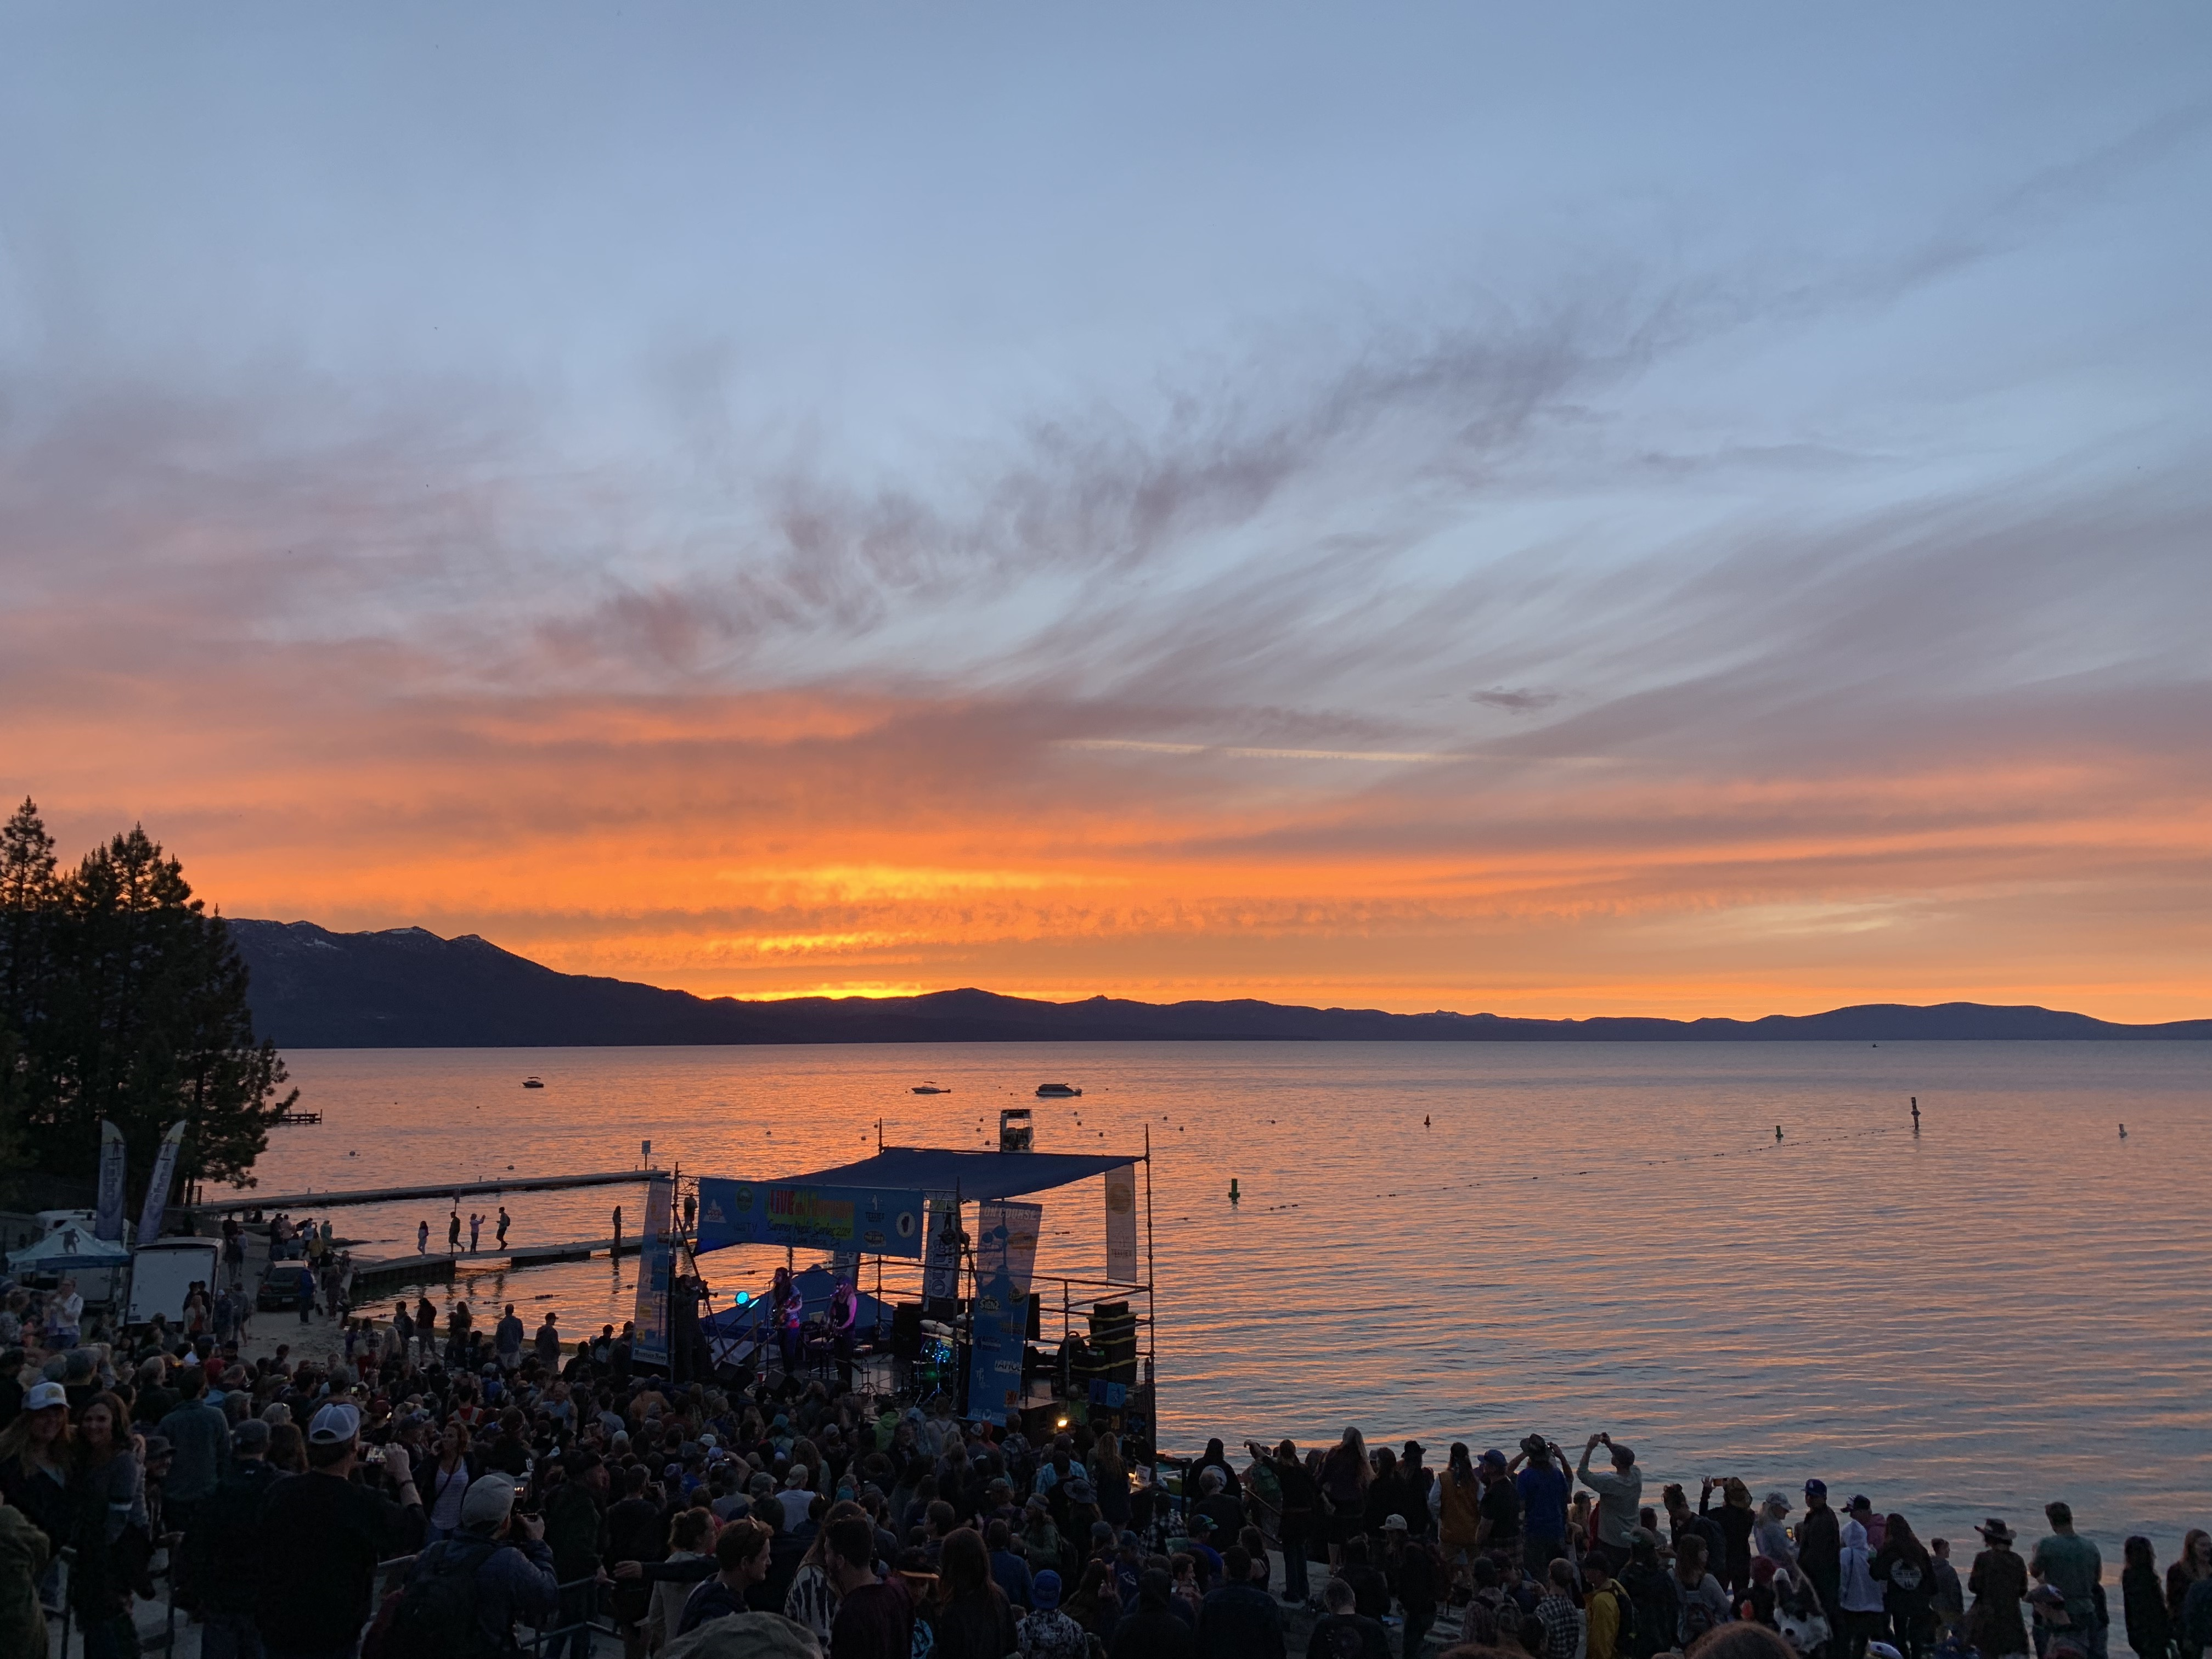 Catch the sunset and live music at Lakeview Commons during the Live at Lakeview Summer Concert Series